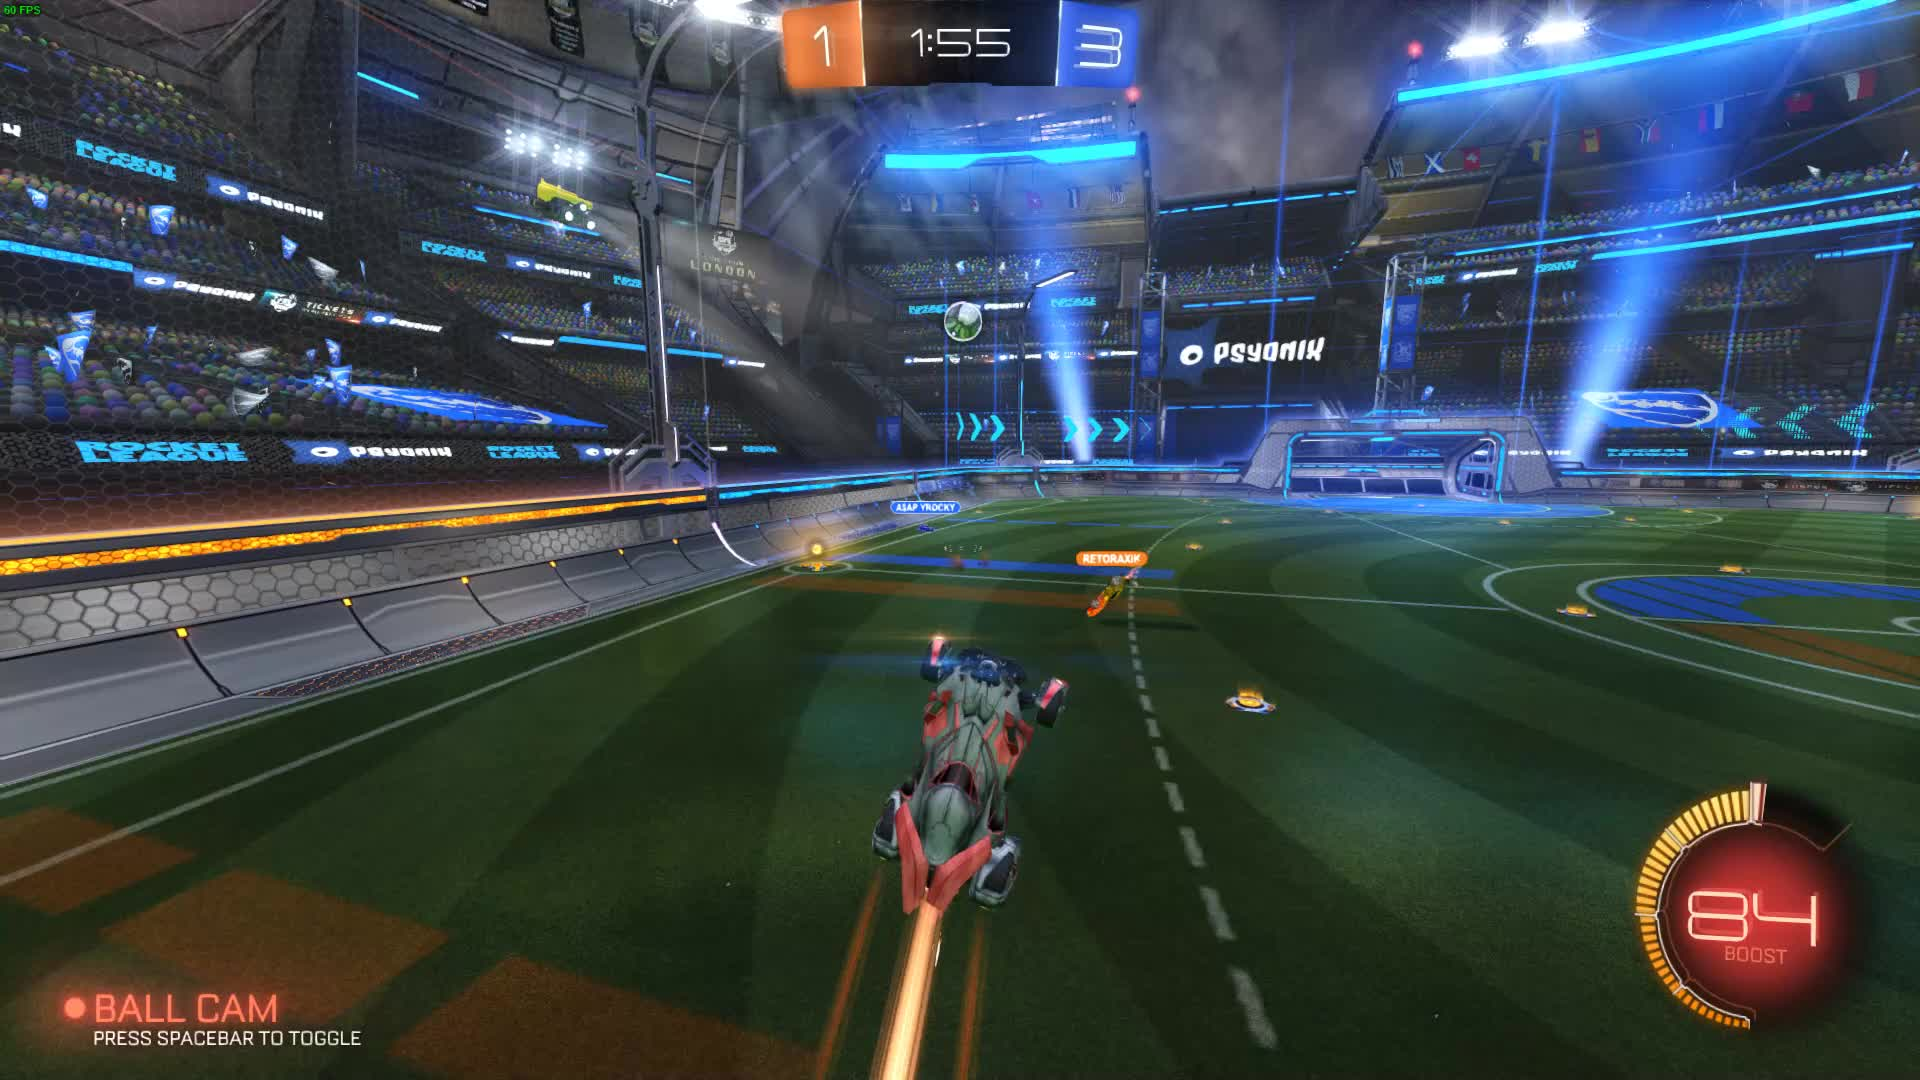 RocketLeague, vlc-record-2018-06-13-21h07m49s-Rocket League 2018.06.13 - 18.41.41.03.DVR.mp4- GIFs